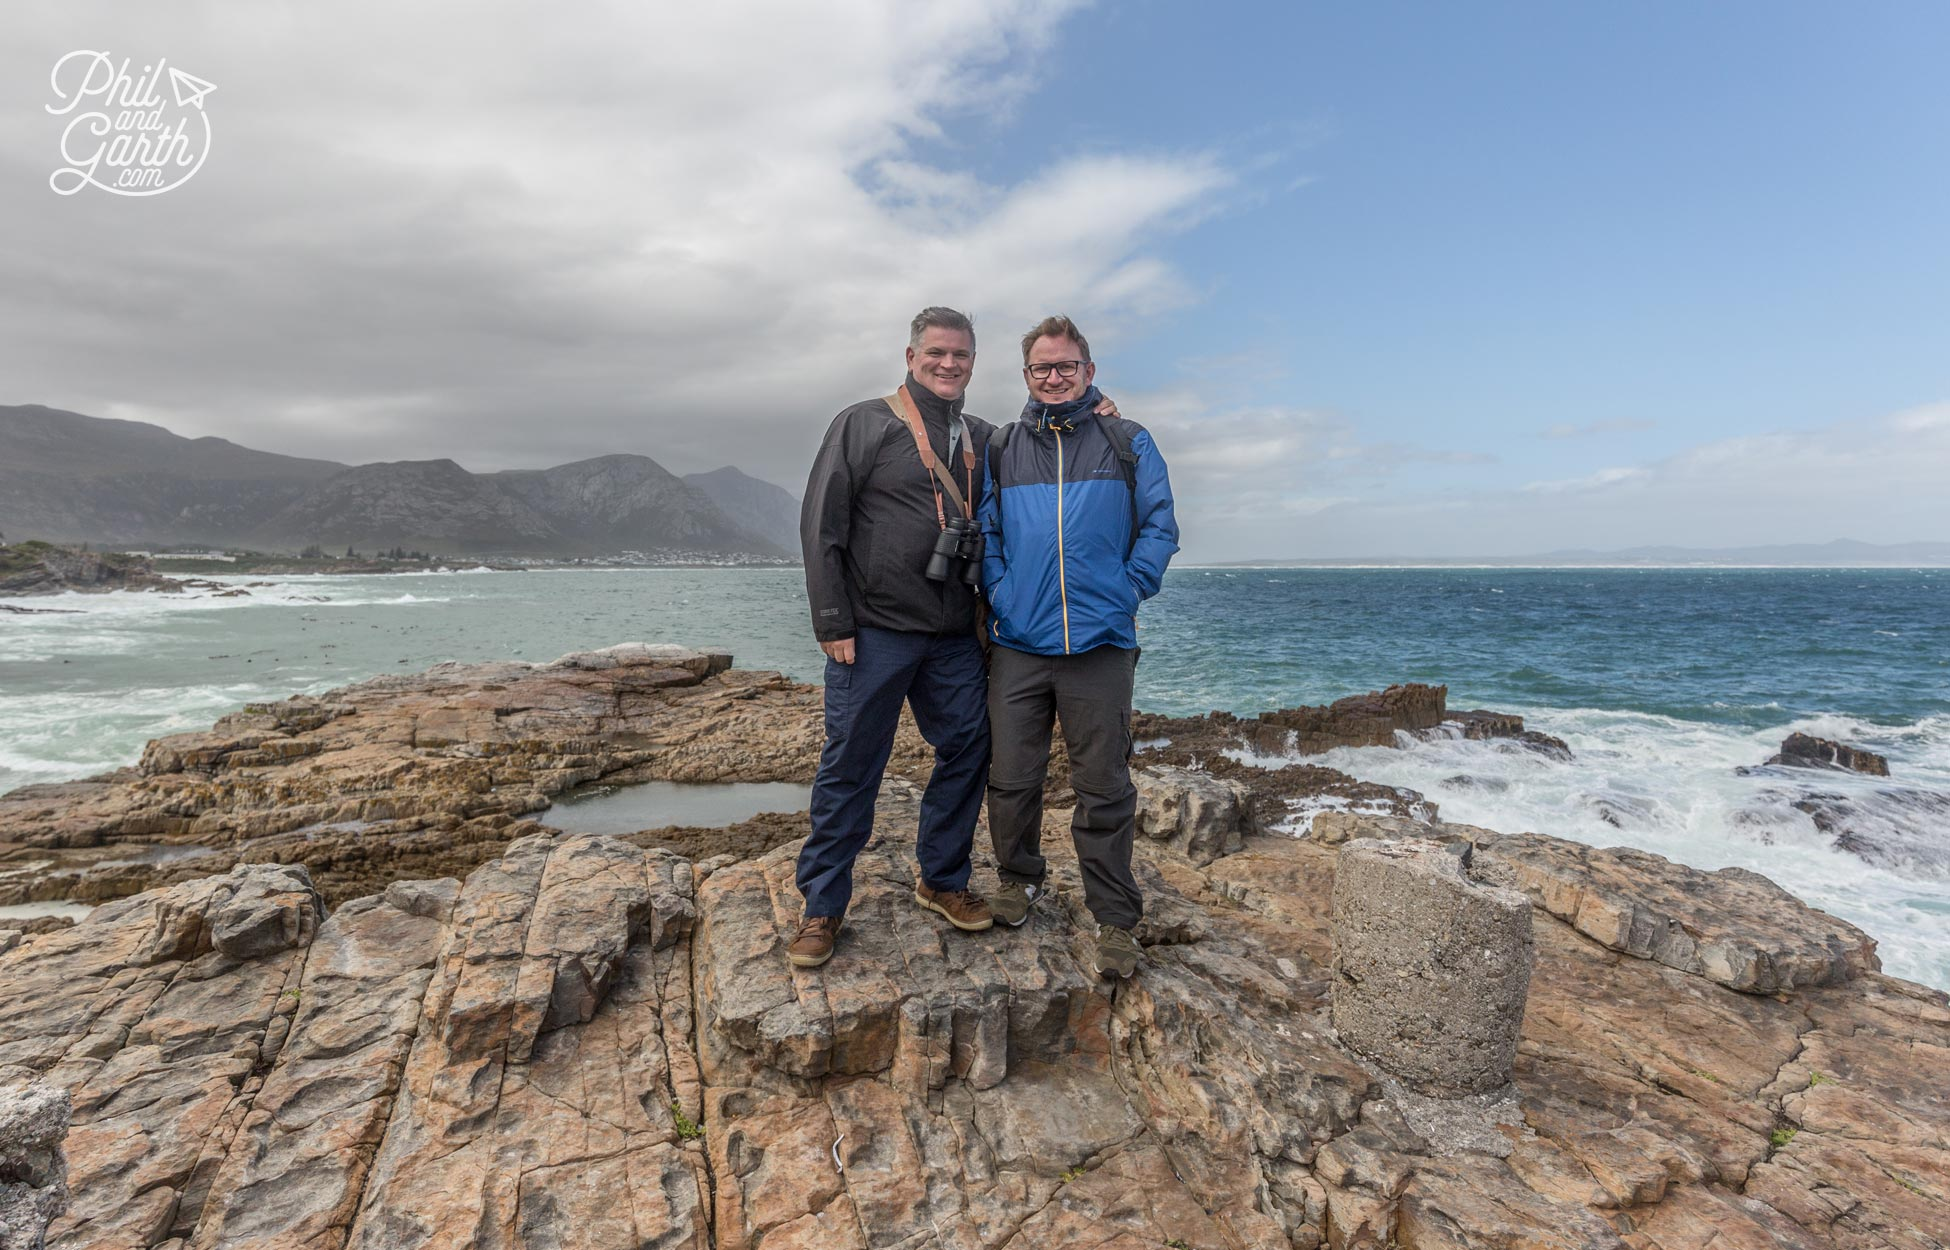 Phil and Garth at Hermanus, South Africa